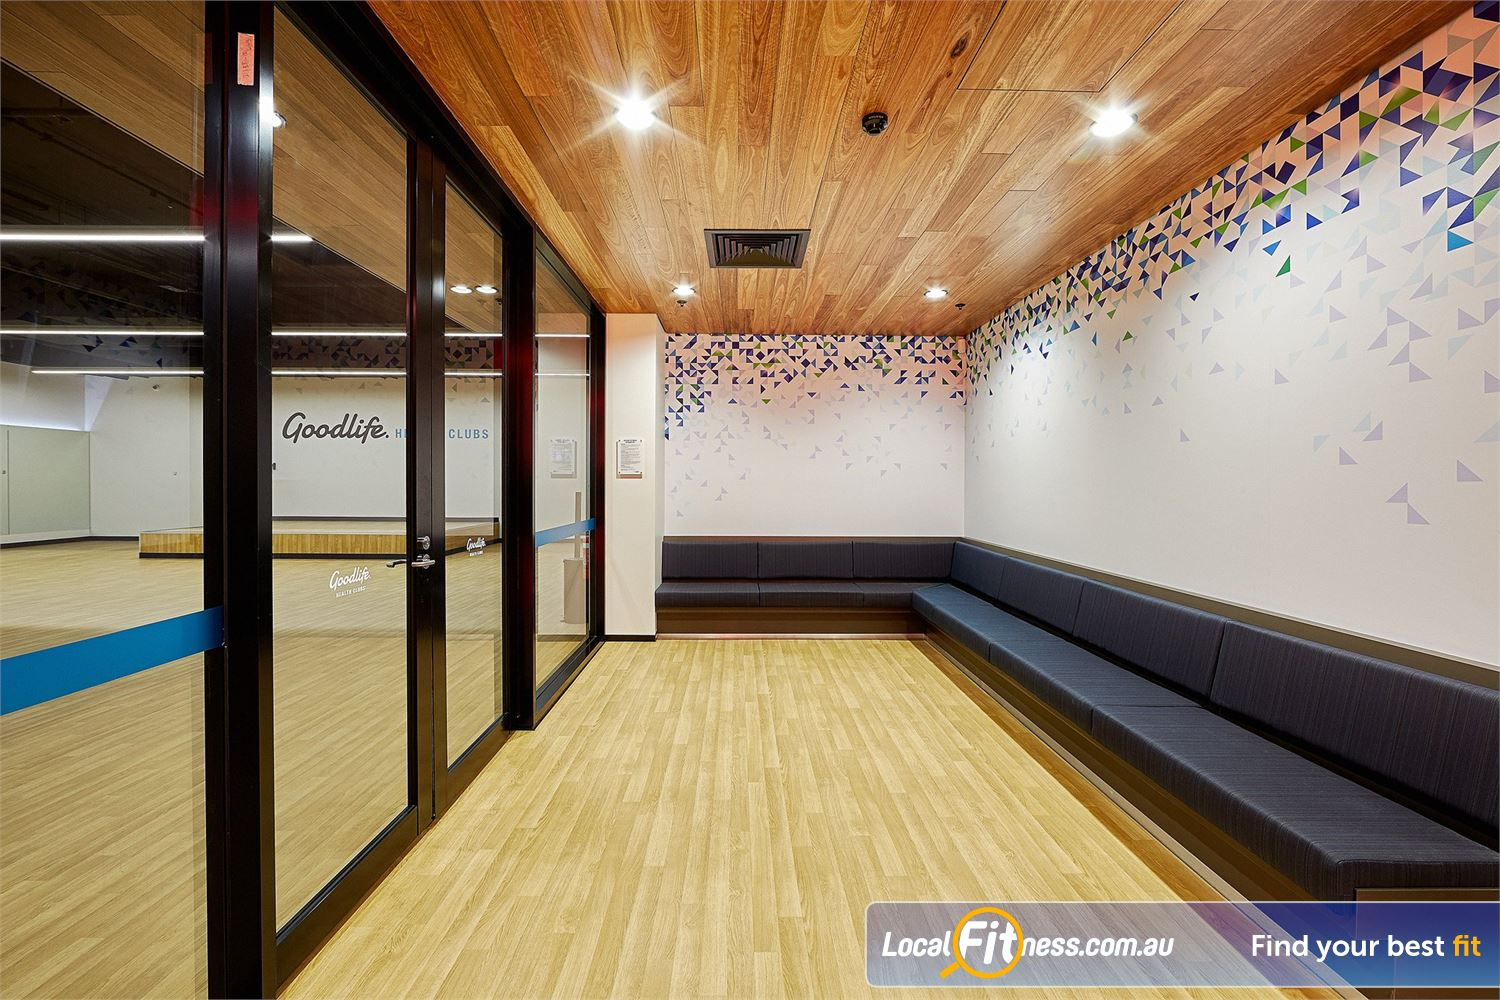 Image Result For Find A Goodlife Gym Near You Goodlife Fitness